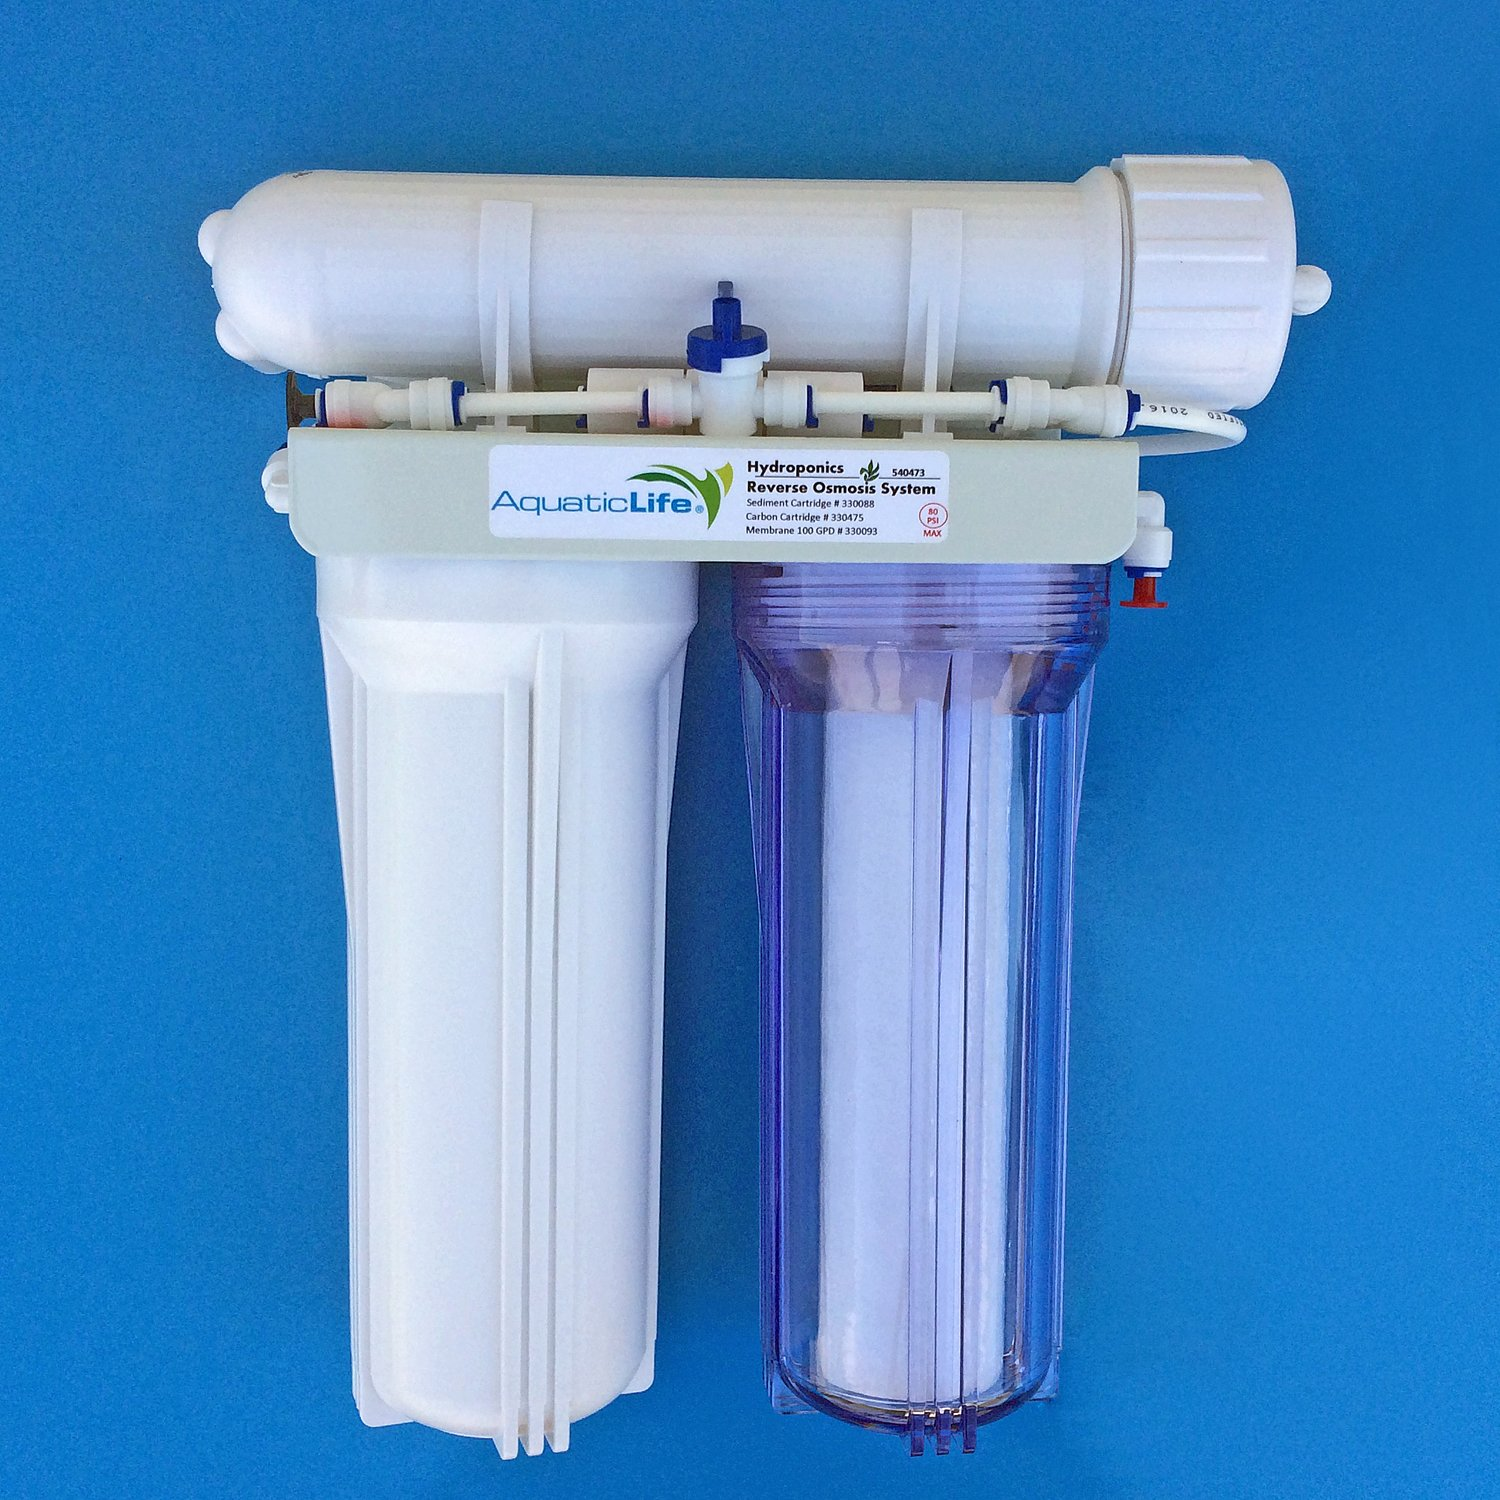 Aquatic Life 3-Stage 100 GPD Hydroponic Reverse Osmosis Filtration System